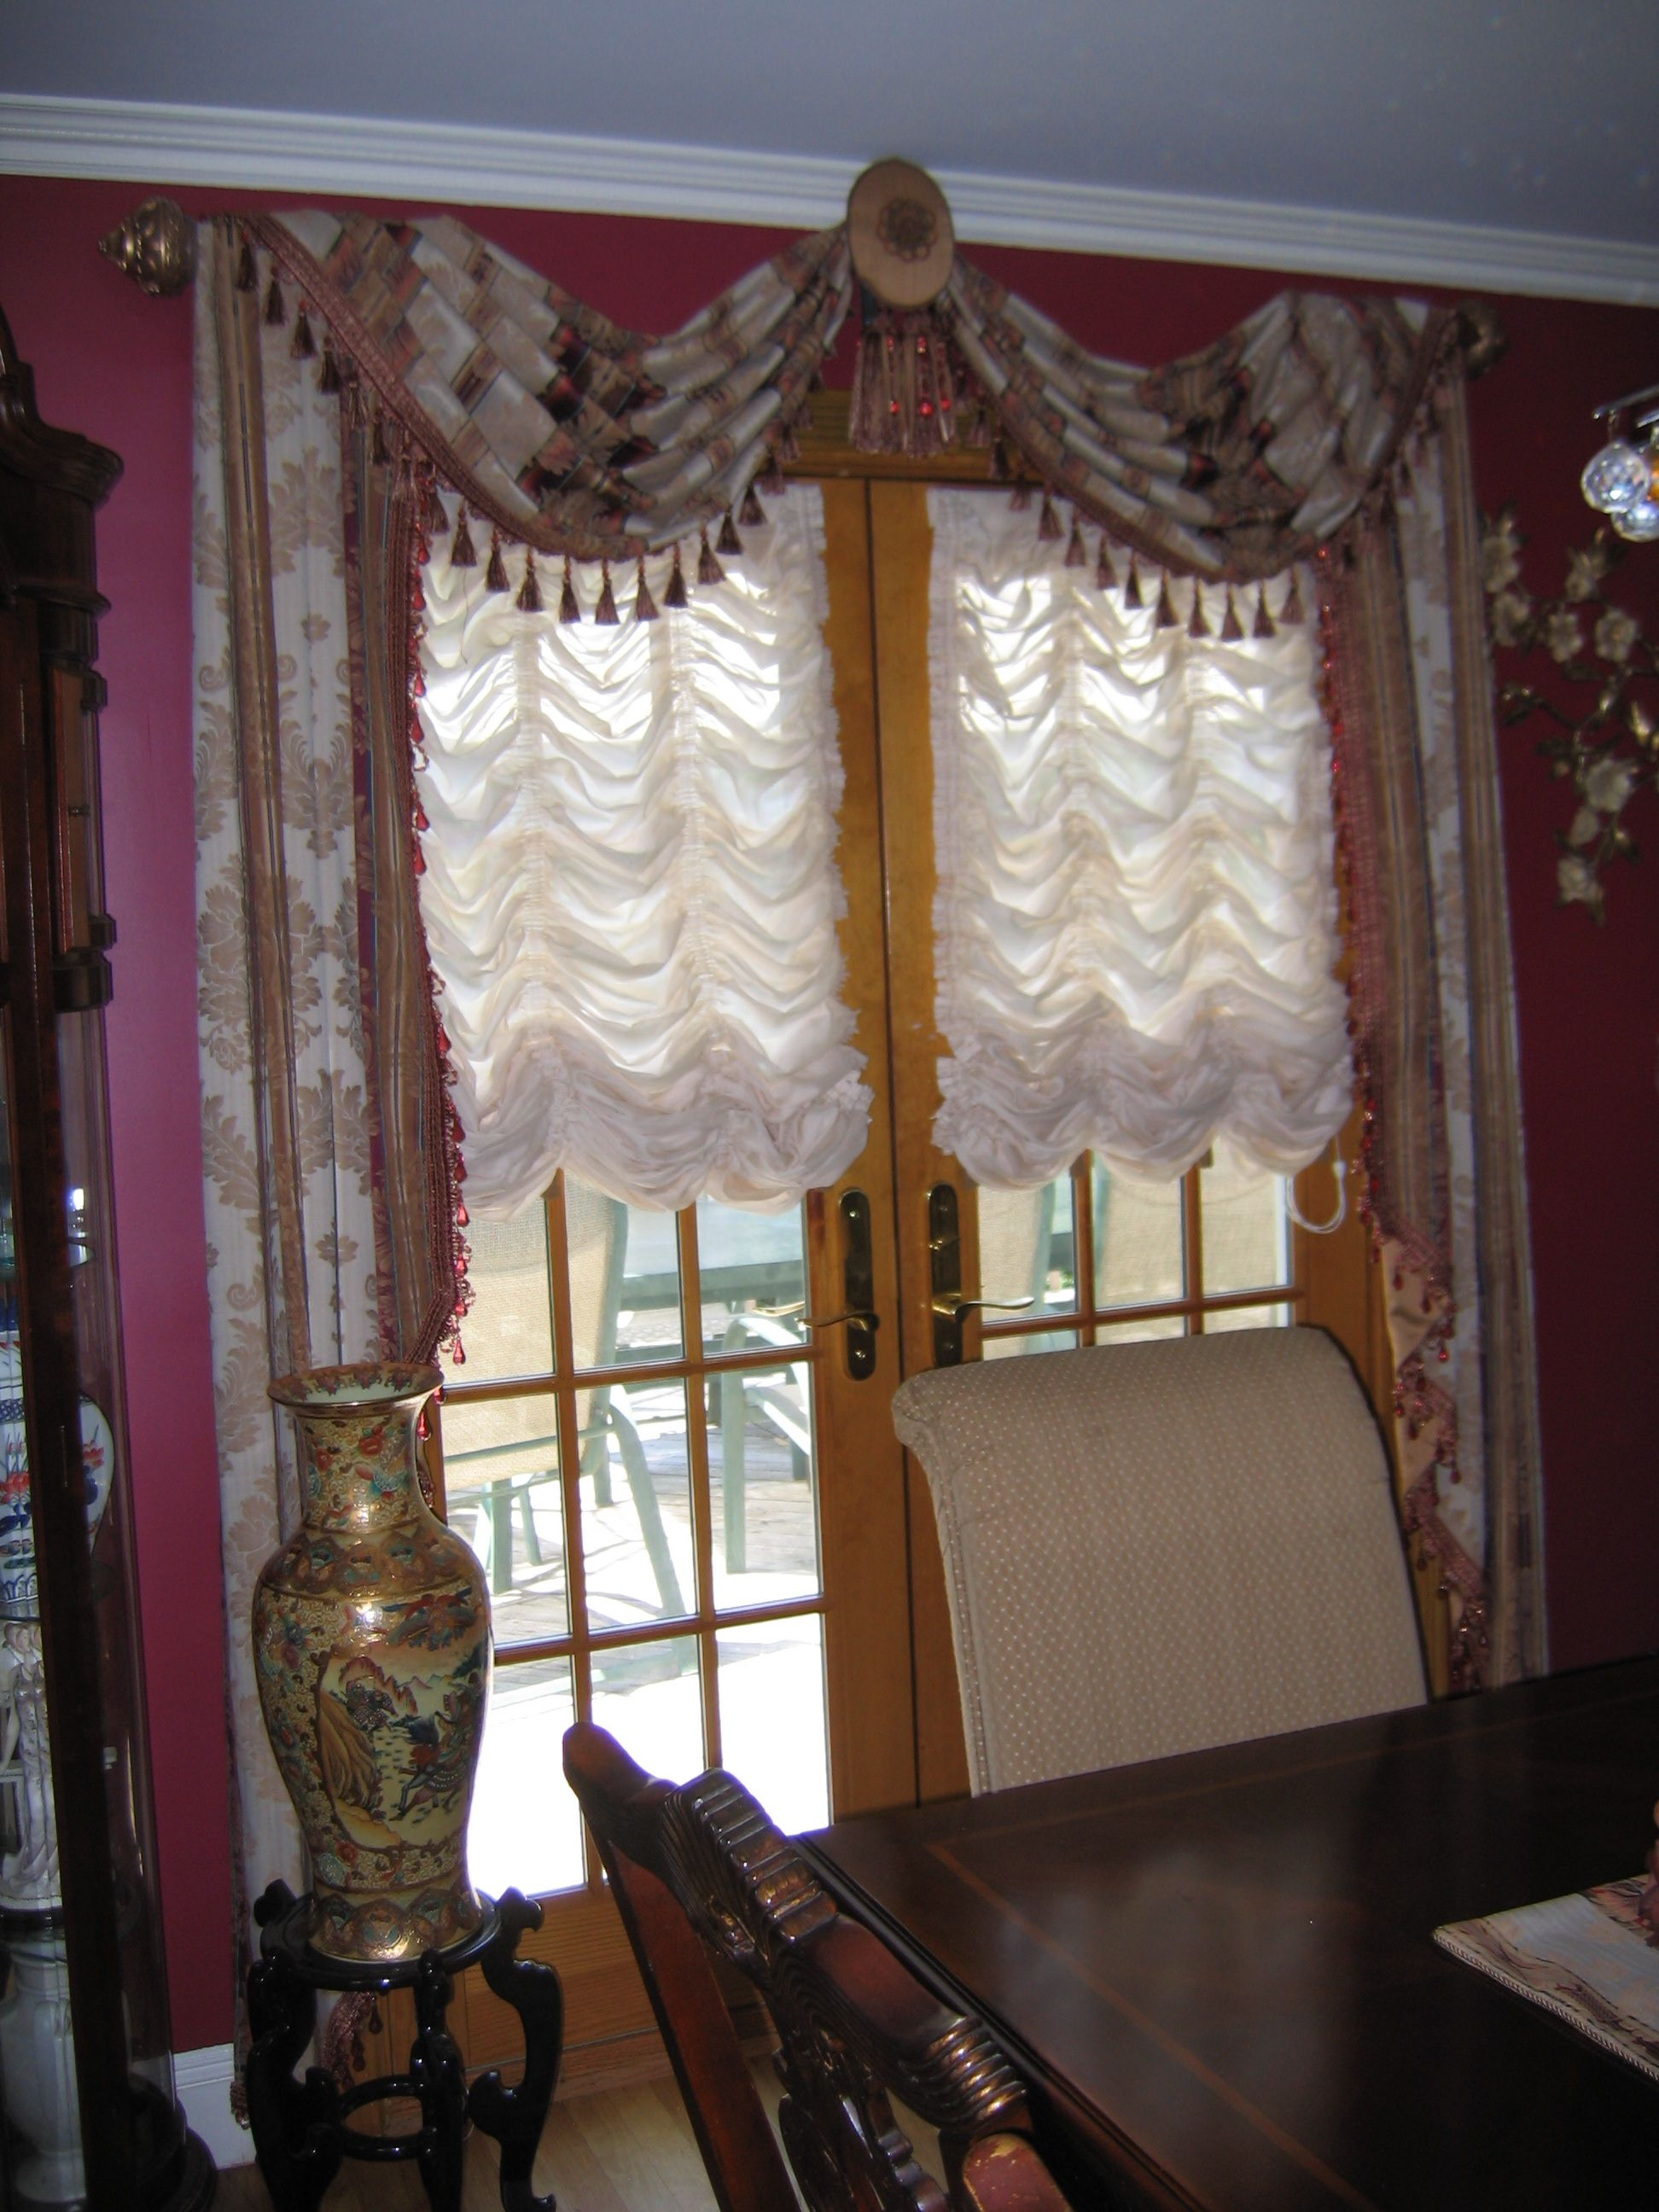 Austrian Curtains Throw Style Swags Jabots On French Door Over Austrian Shades